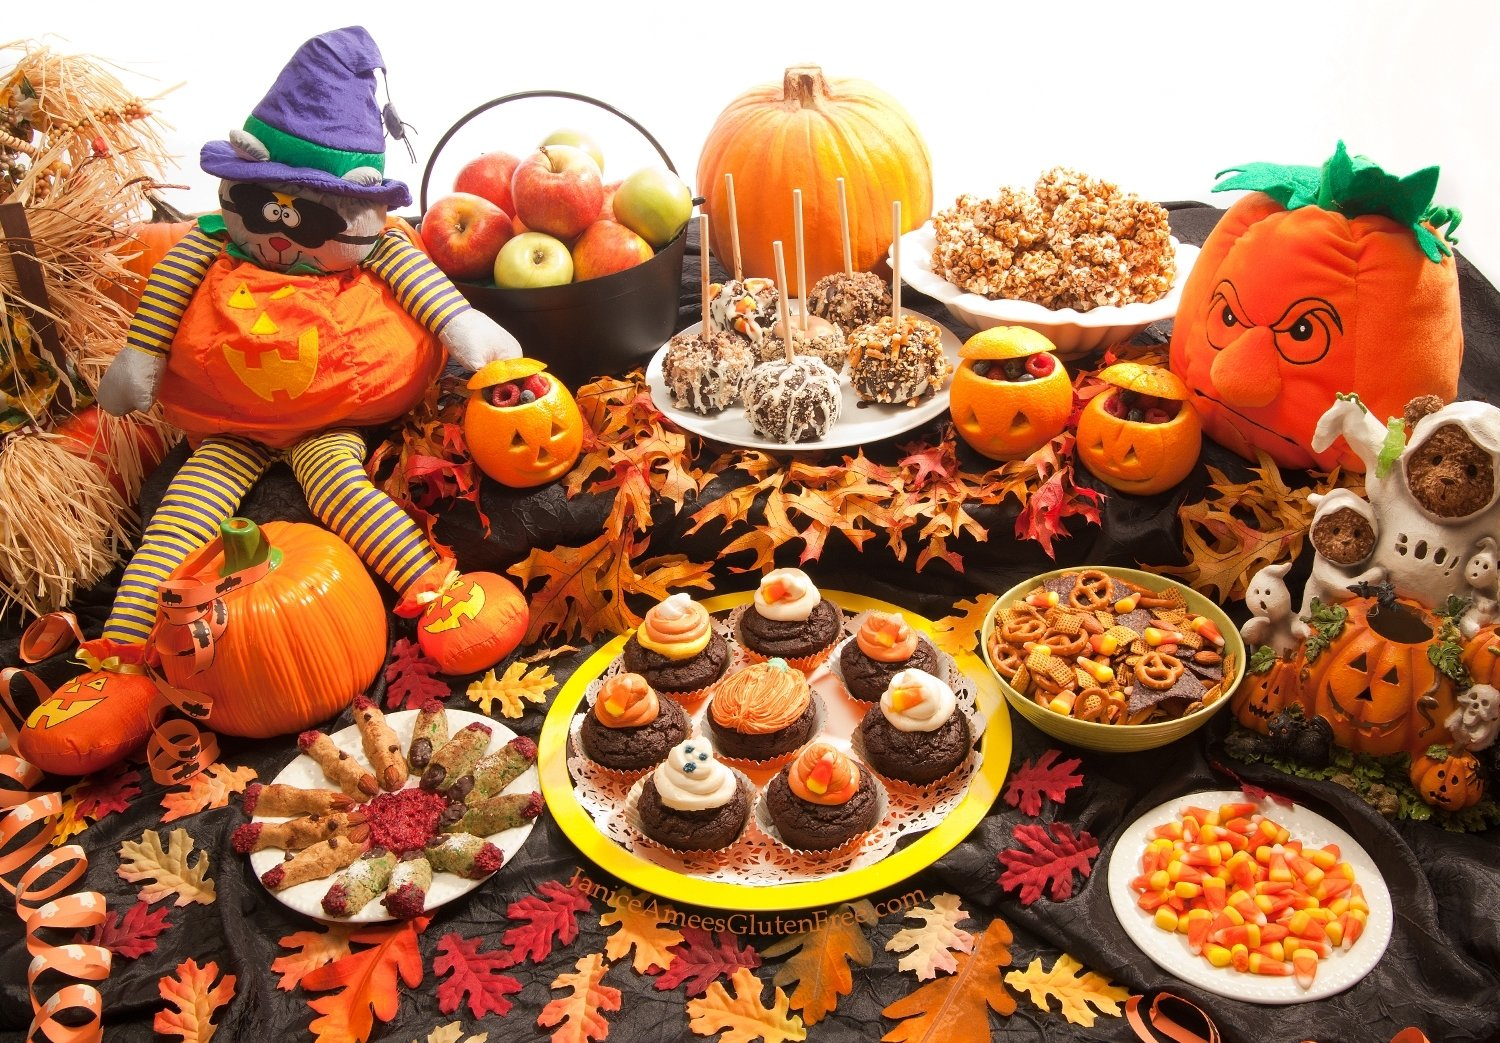 10 Stylish Halloween Food Ideas For Kids Party janice amees gluten free gluten free halloween party 3 2020